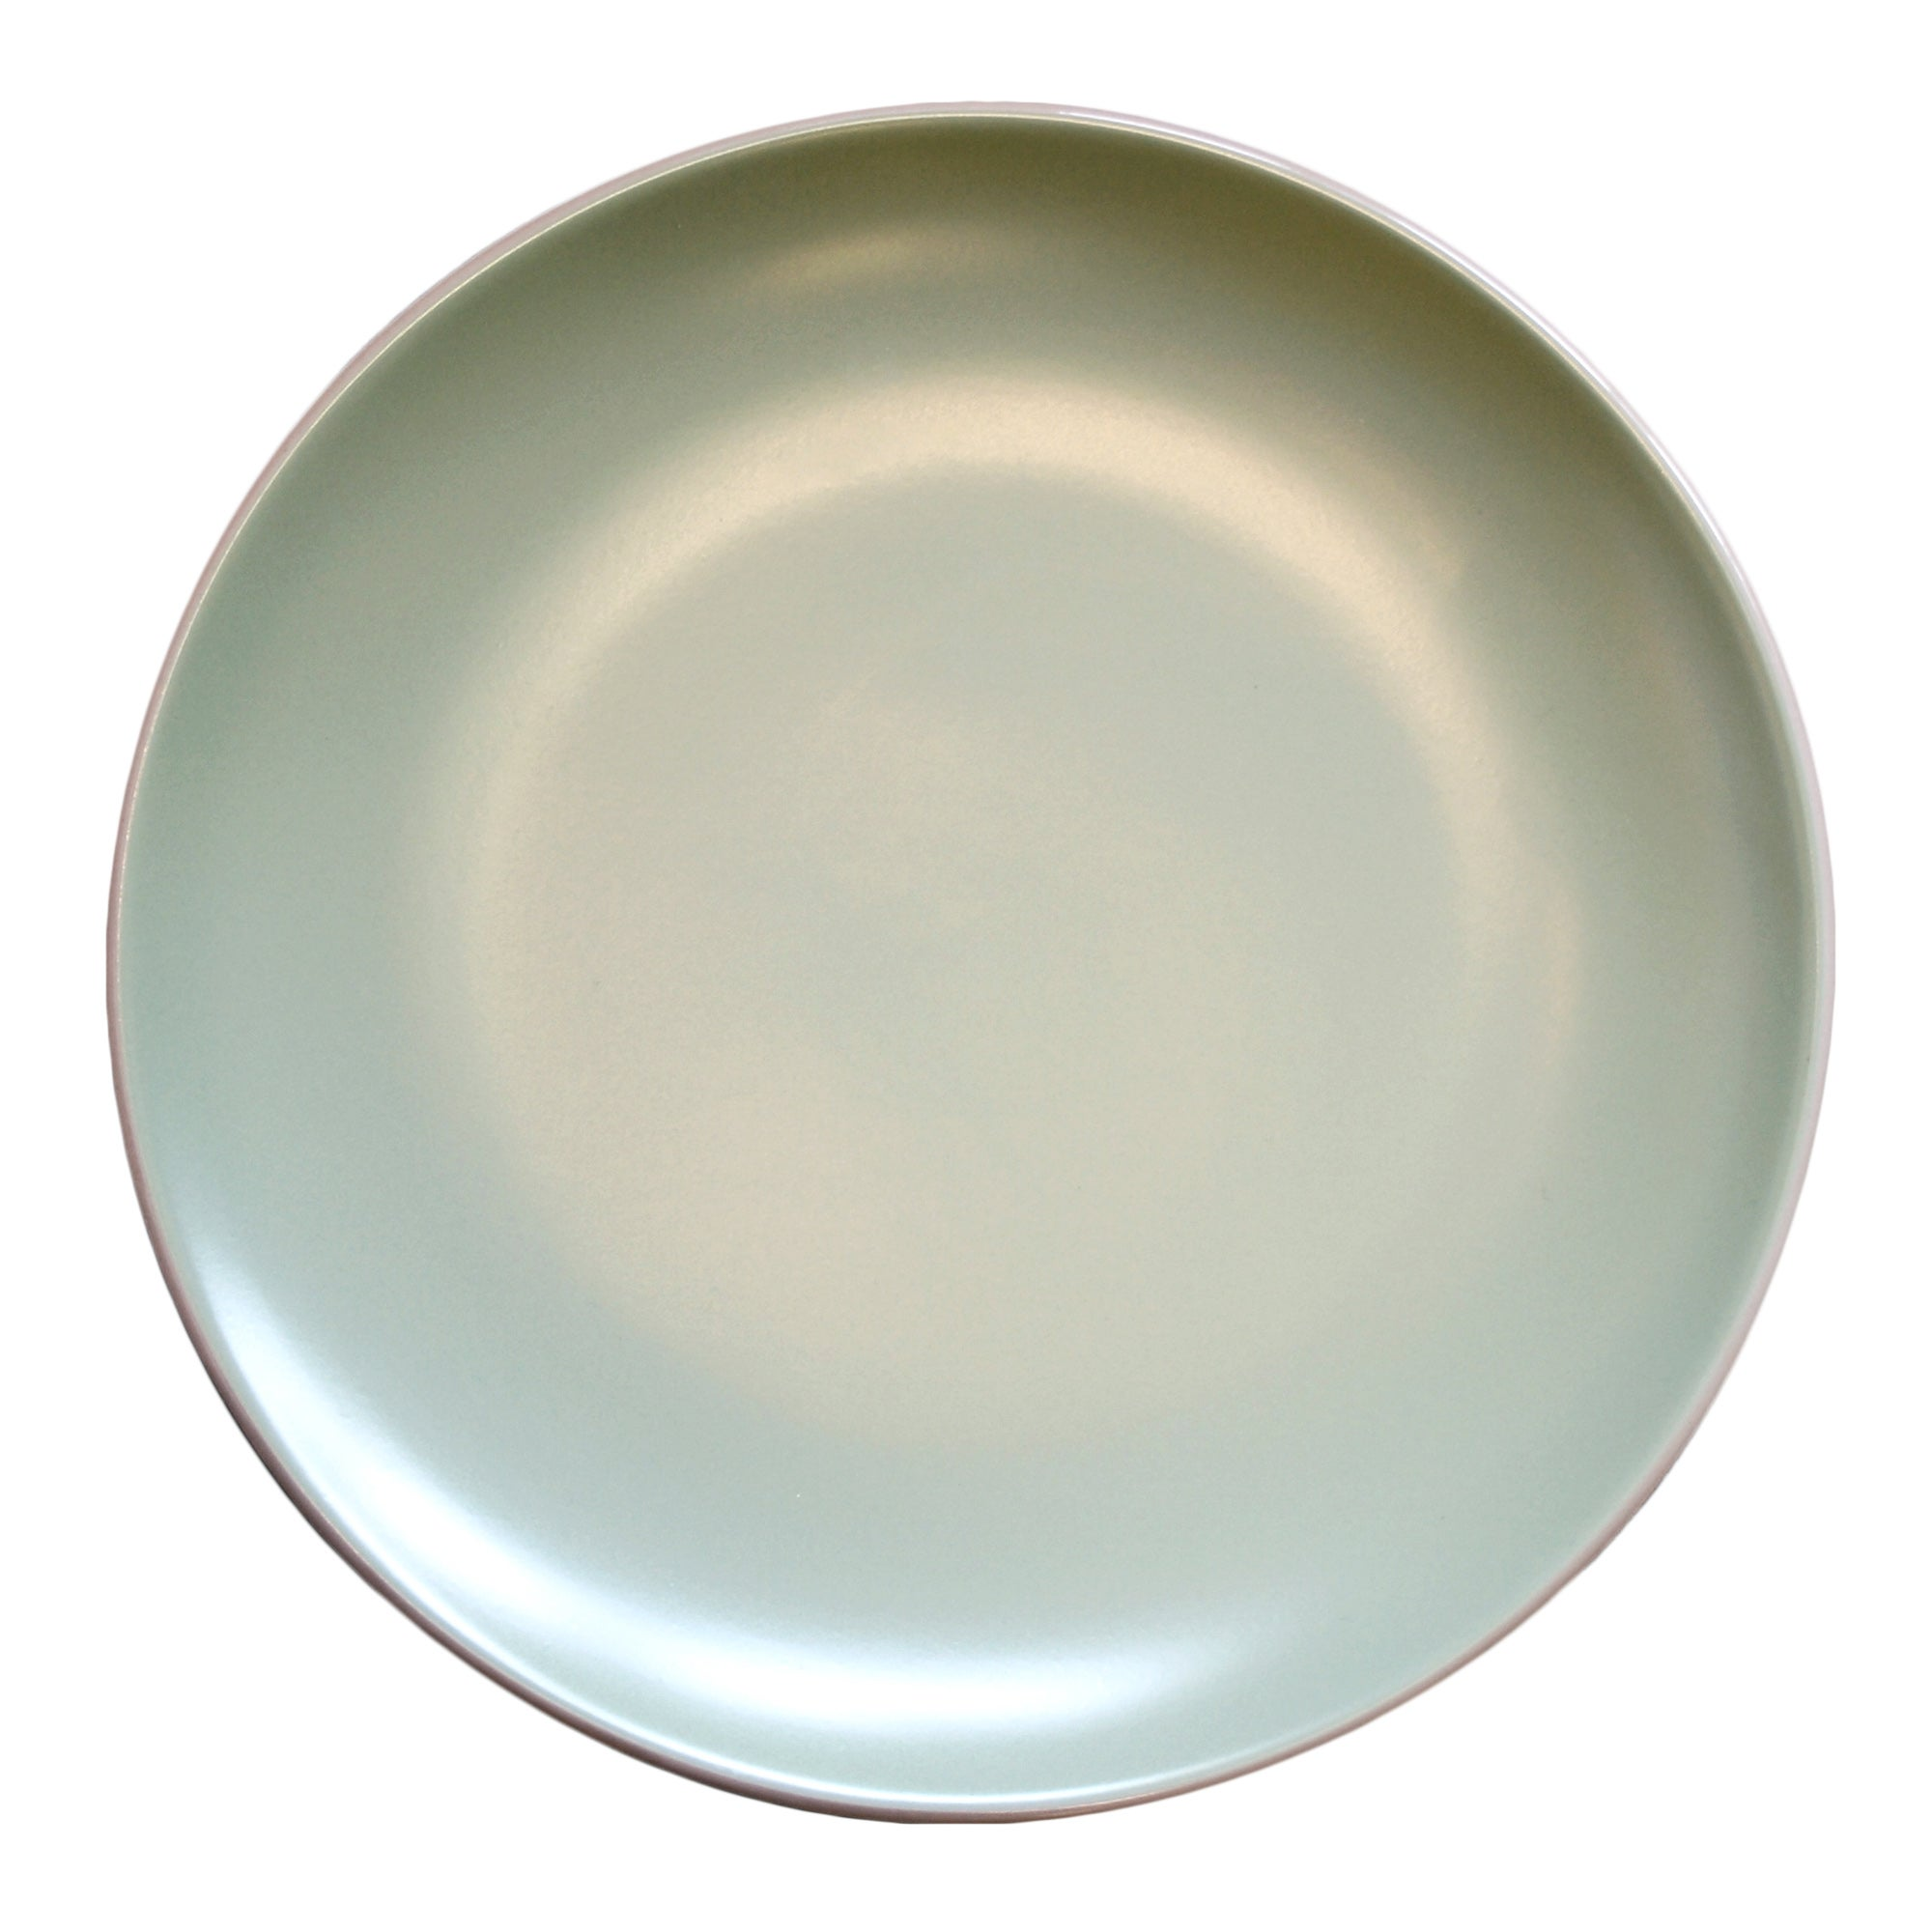 Olive Monaco Collection Dinner Plate